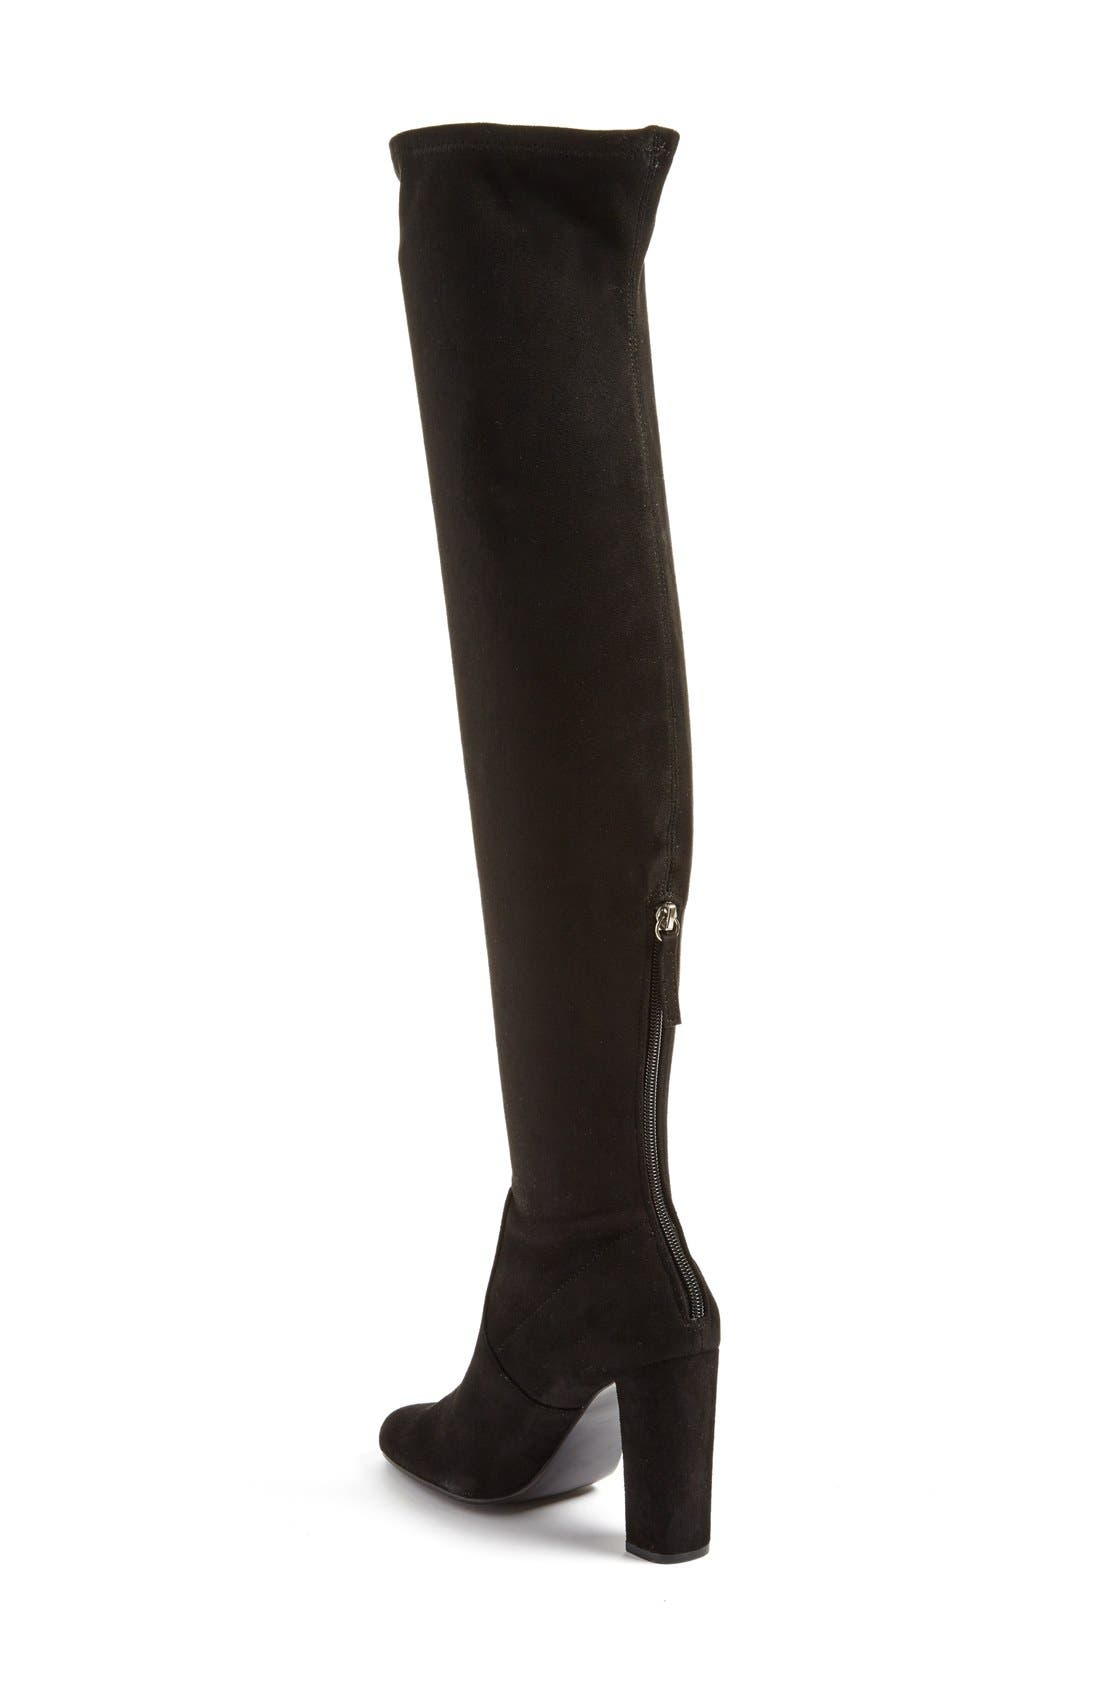 'Emotions' Stretch Over the Knee Boot,                             Alternate thumbnail 3, color,                             001